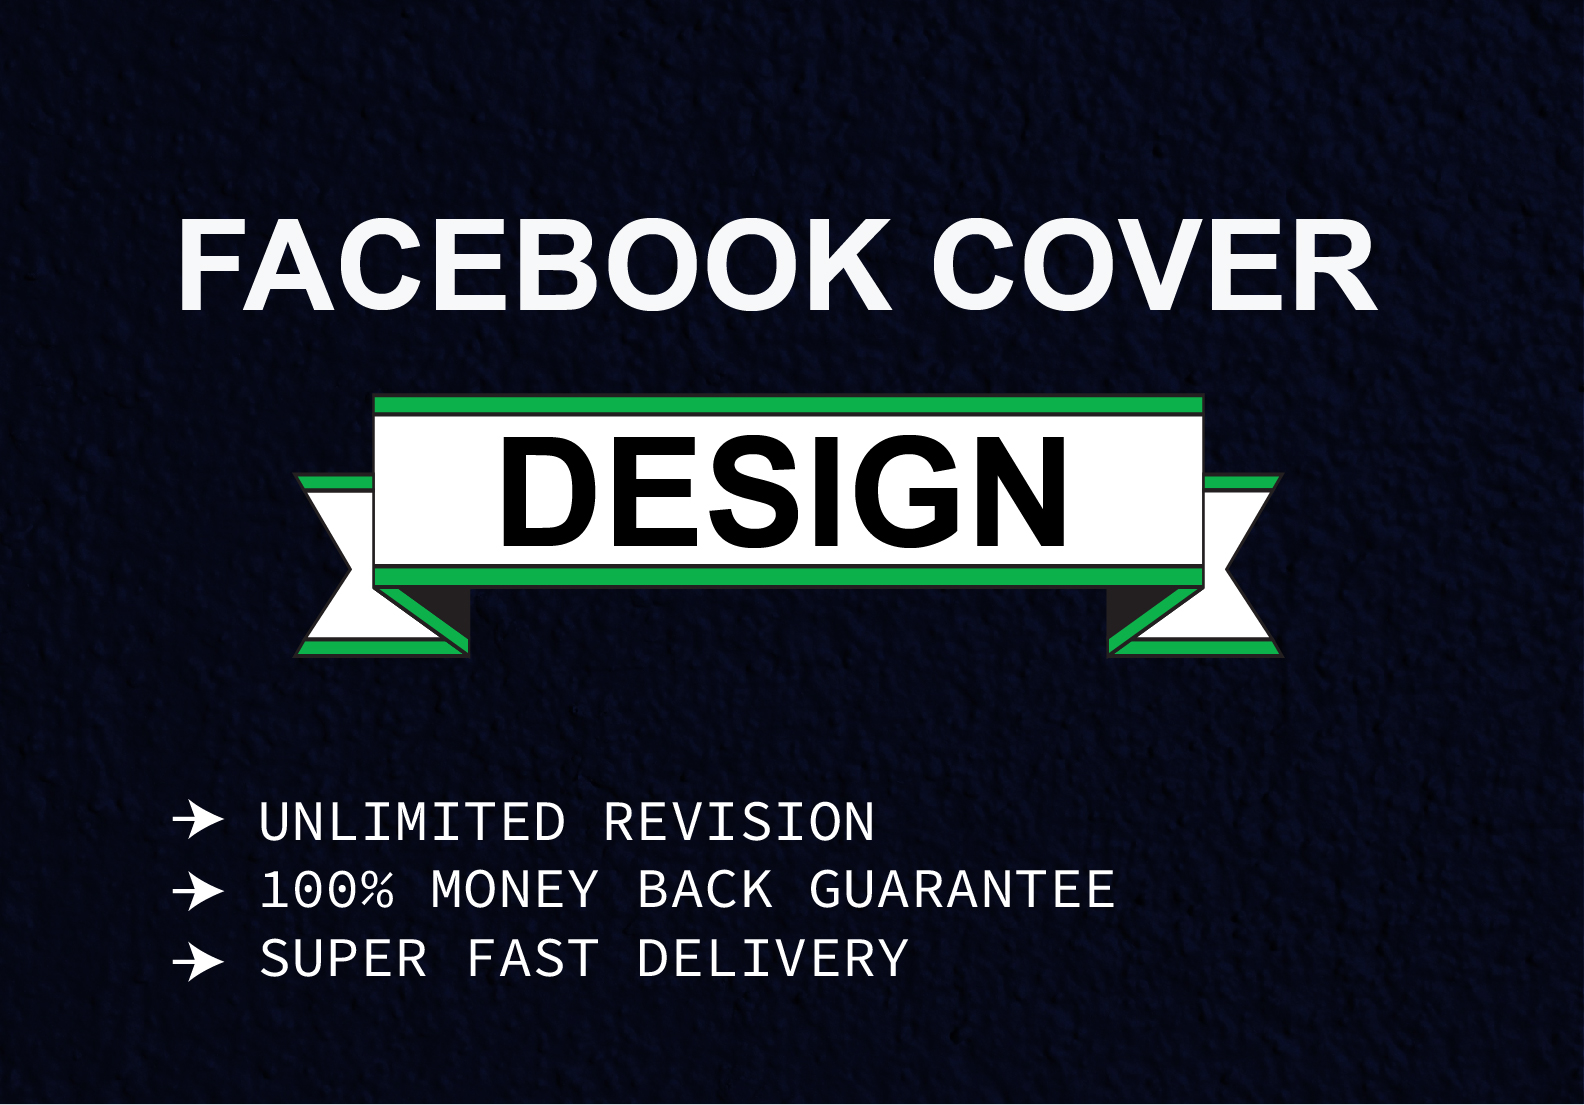 I will create an professional Facebook cover design or social media post.